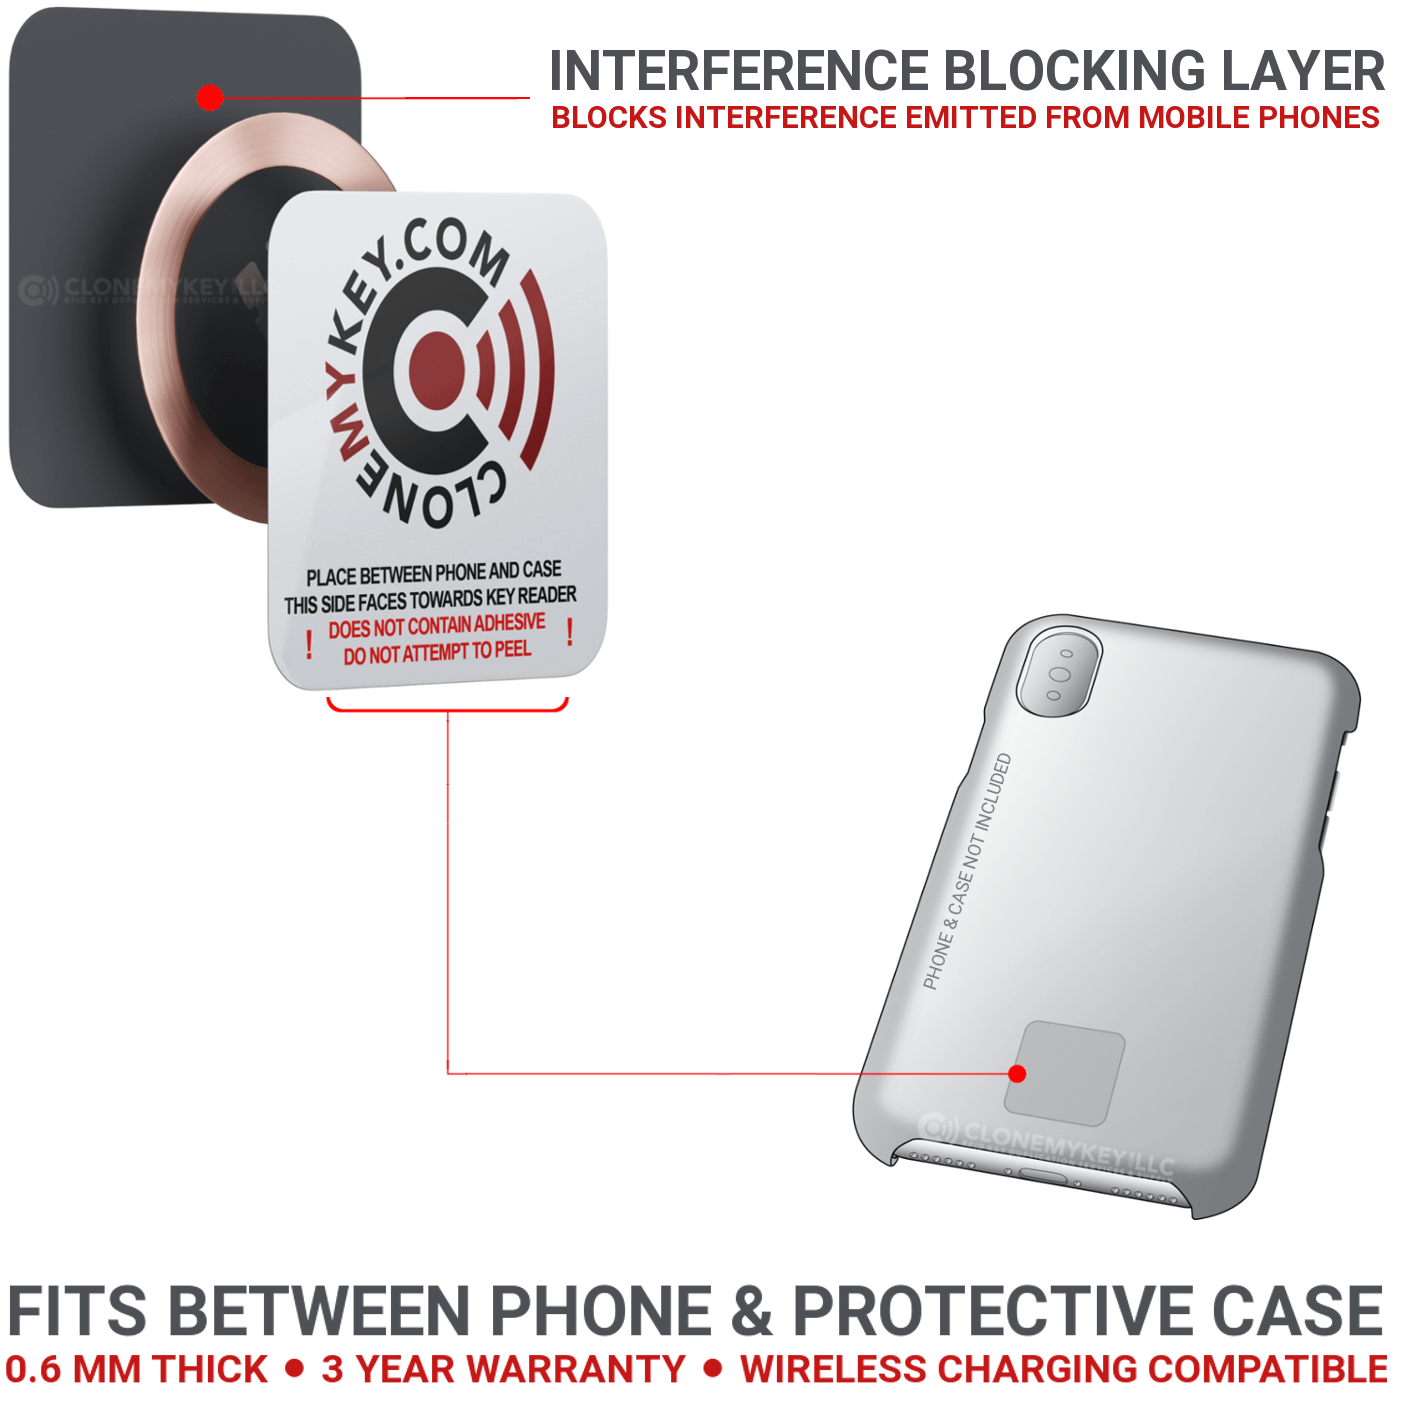 RFID Mobile Key - Fits between phone and case